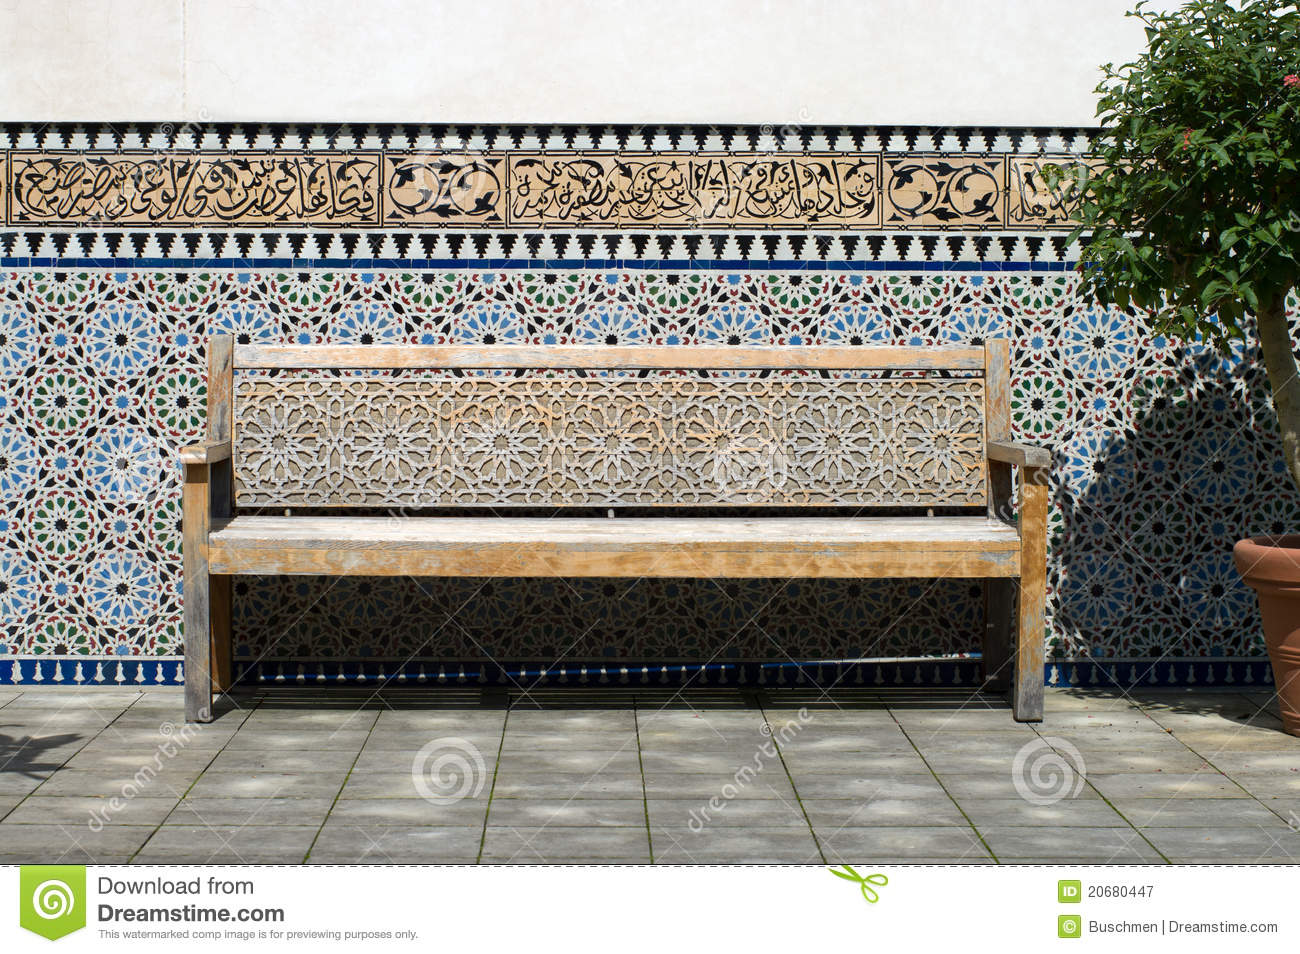 Bench in the moroccan courtyard royalty free stock photography image 20680447 Moroccan bench